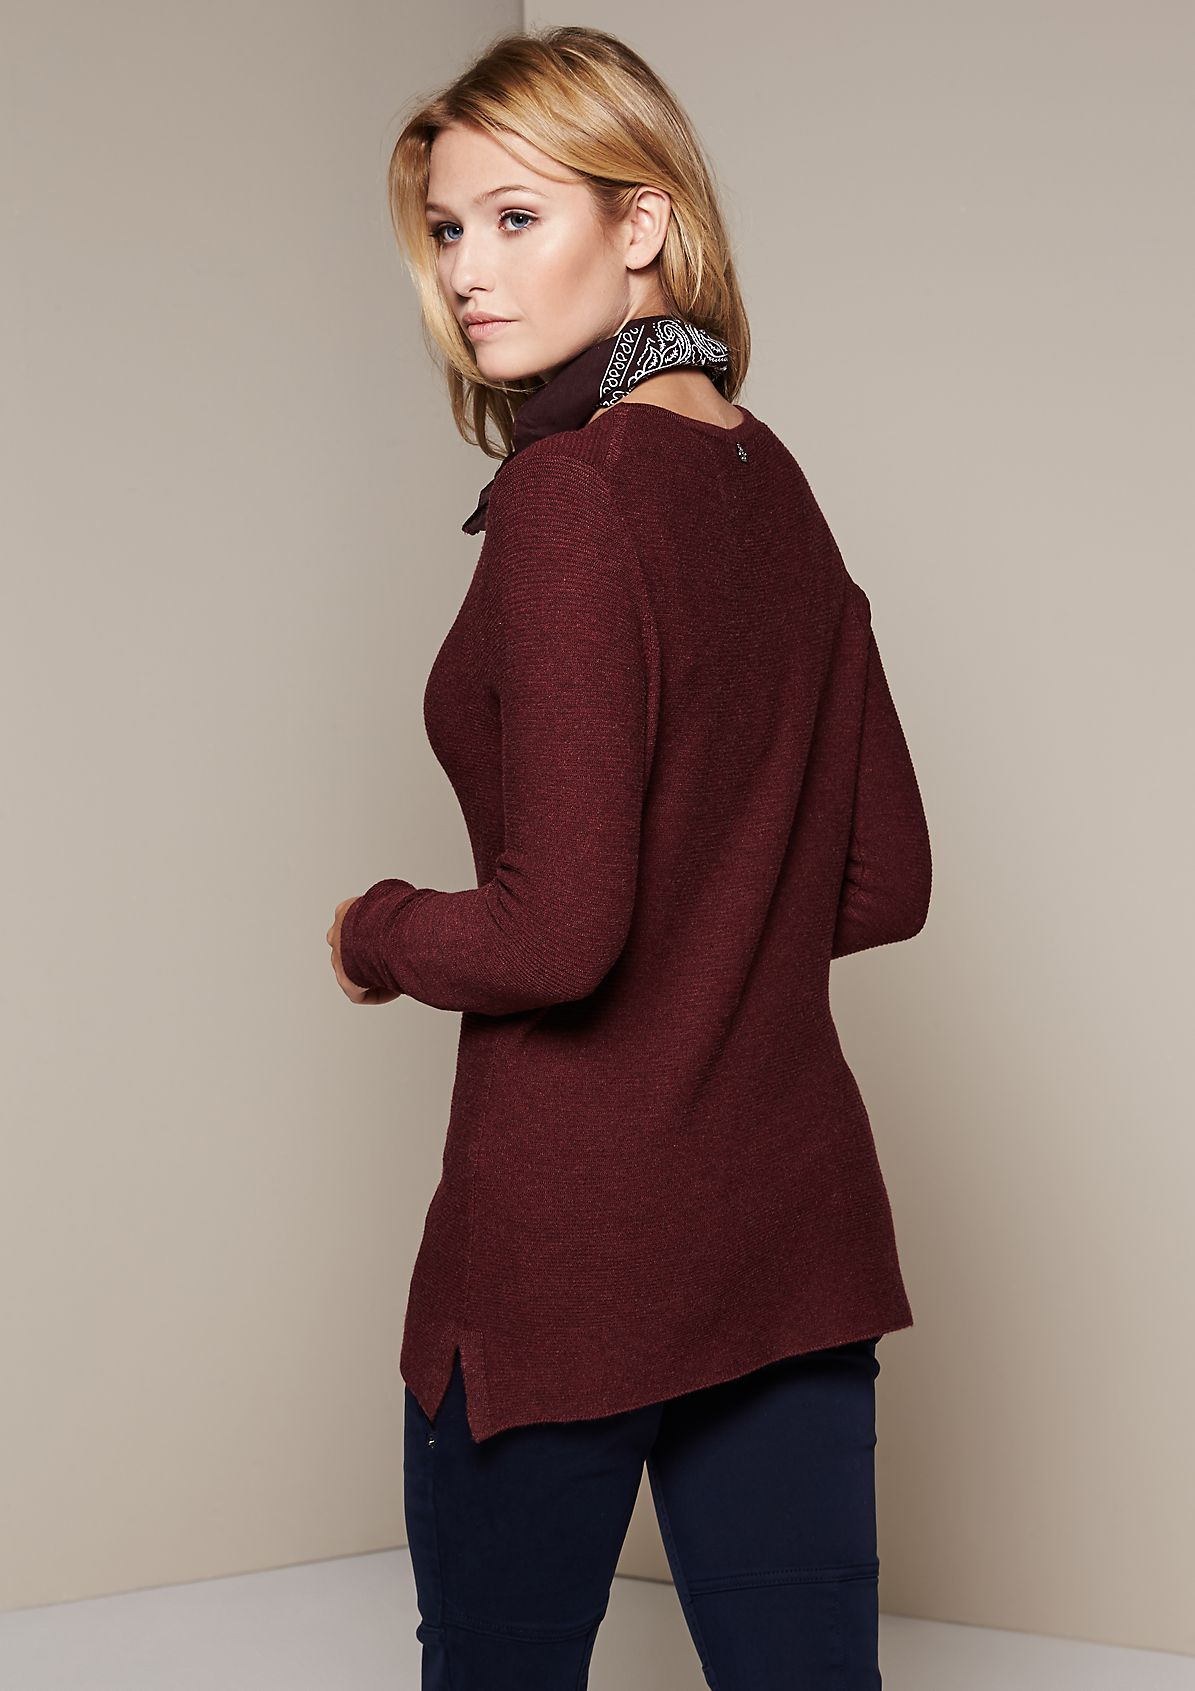 Lightweight knit jumper with a ribbed pattern from s.Oliver